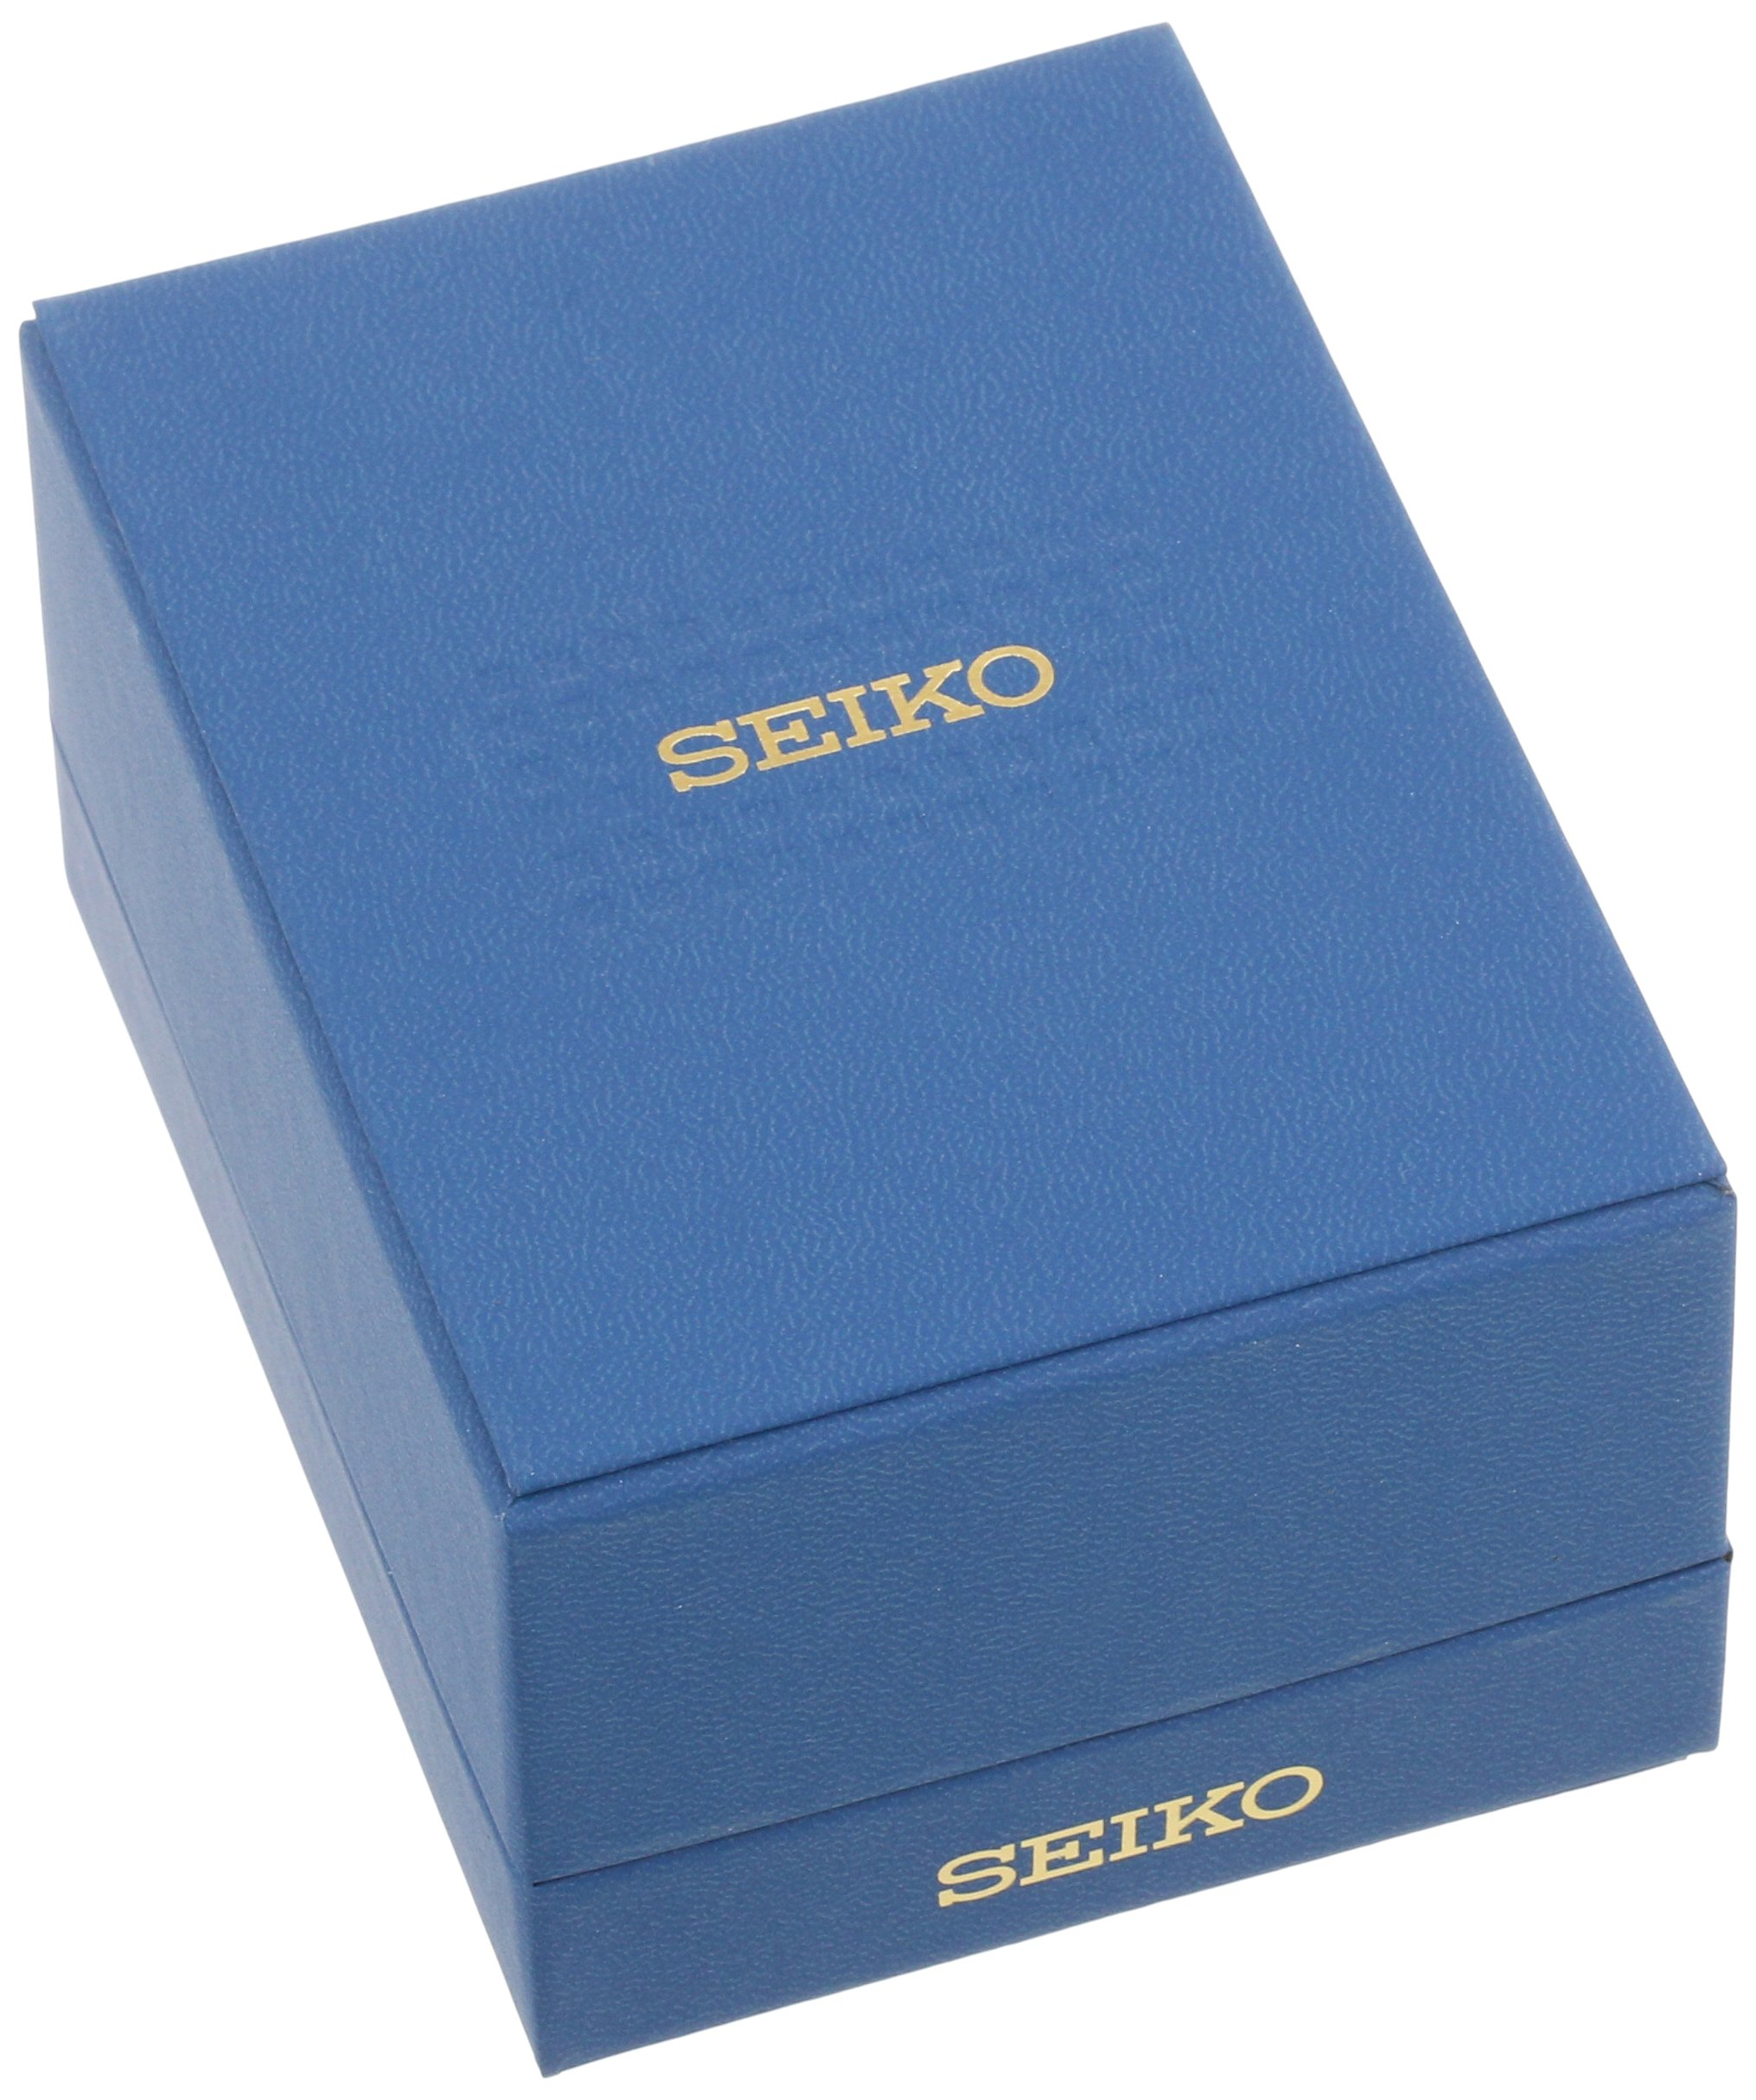 Seiko Men's SKX175 Stainless Steel Automatic Dive Watch by Seiko (Image #4)